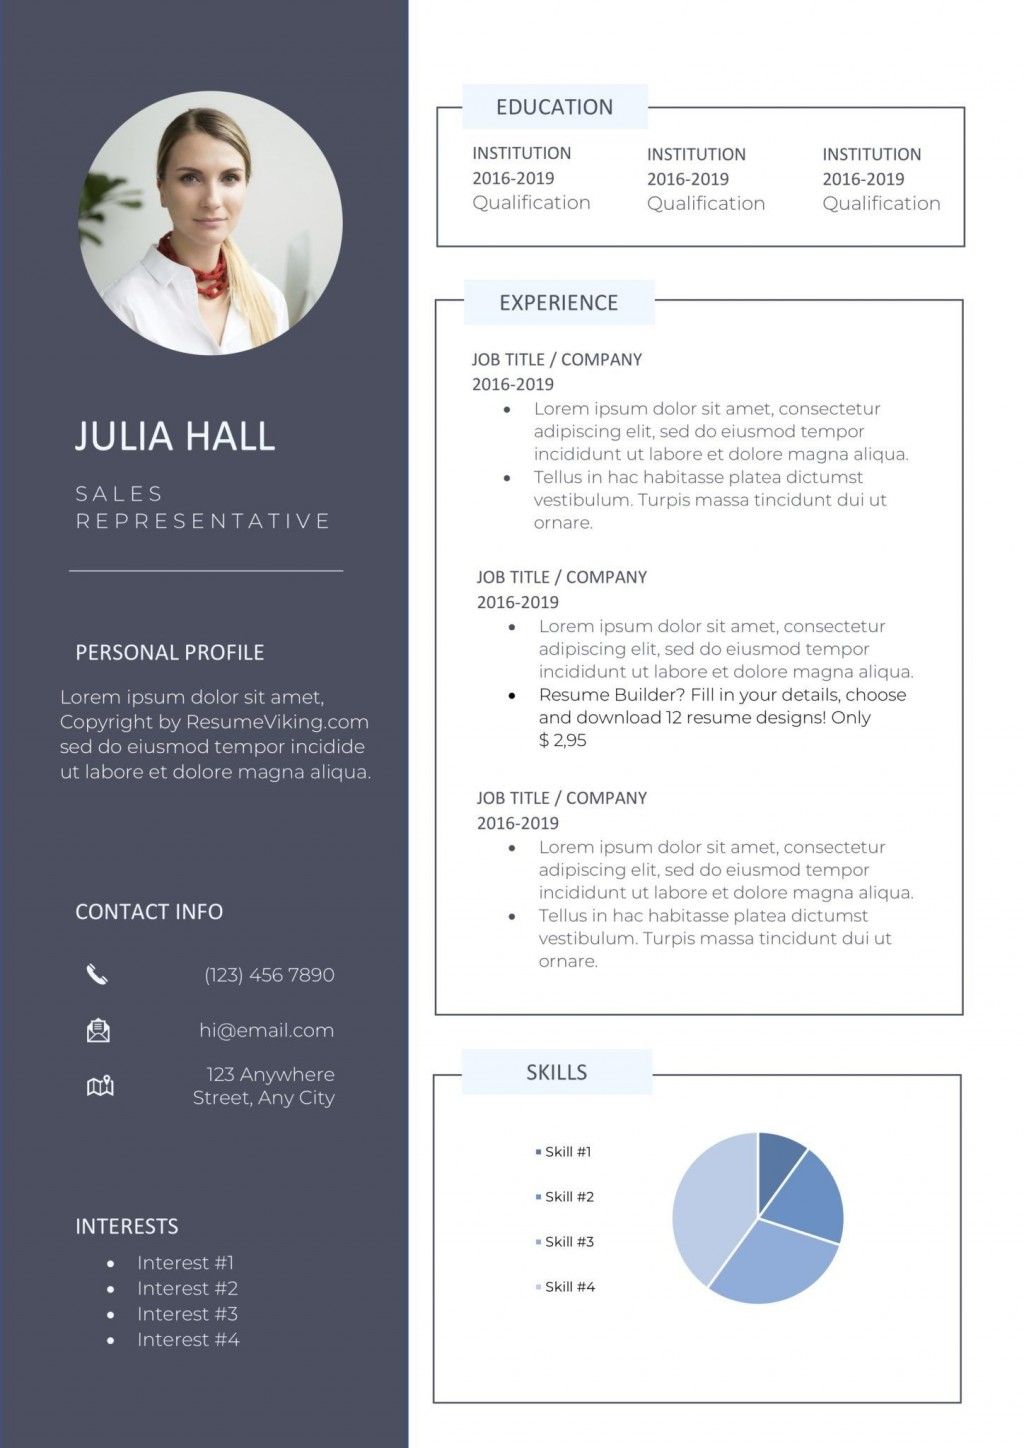 012 Unique Cv Template Free Download Word Doc High Def  Editable Document For Fresher Student EngineerLarge